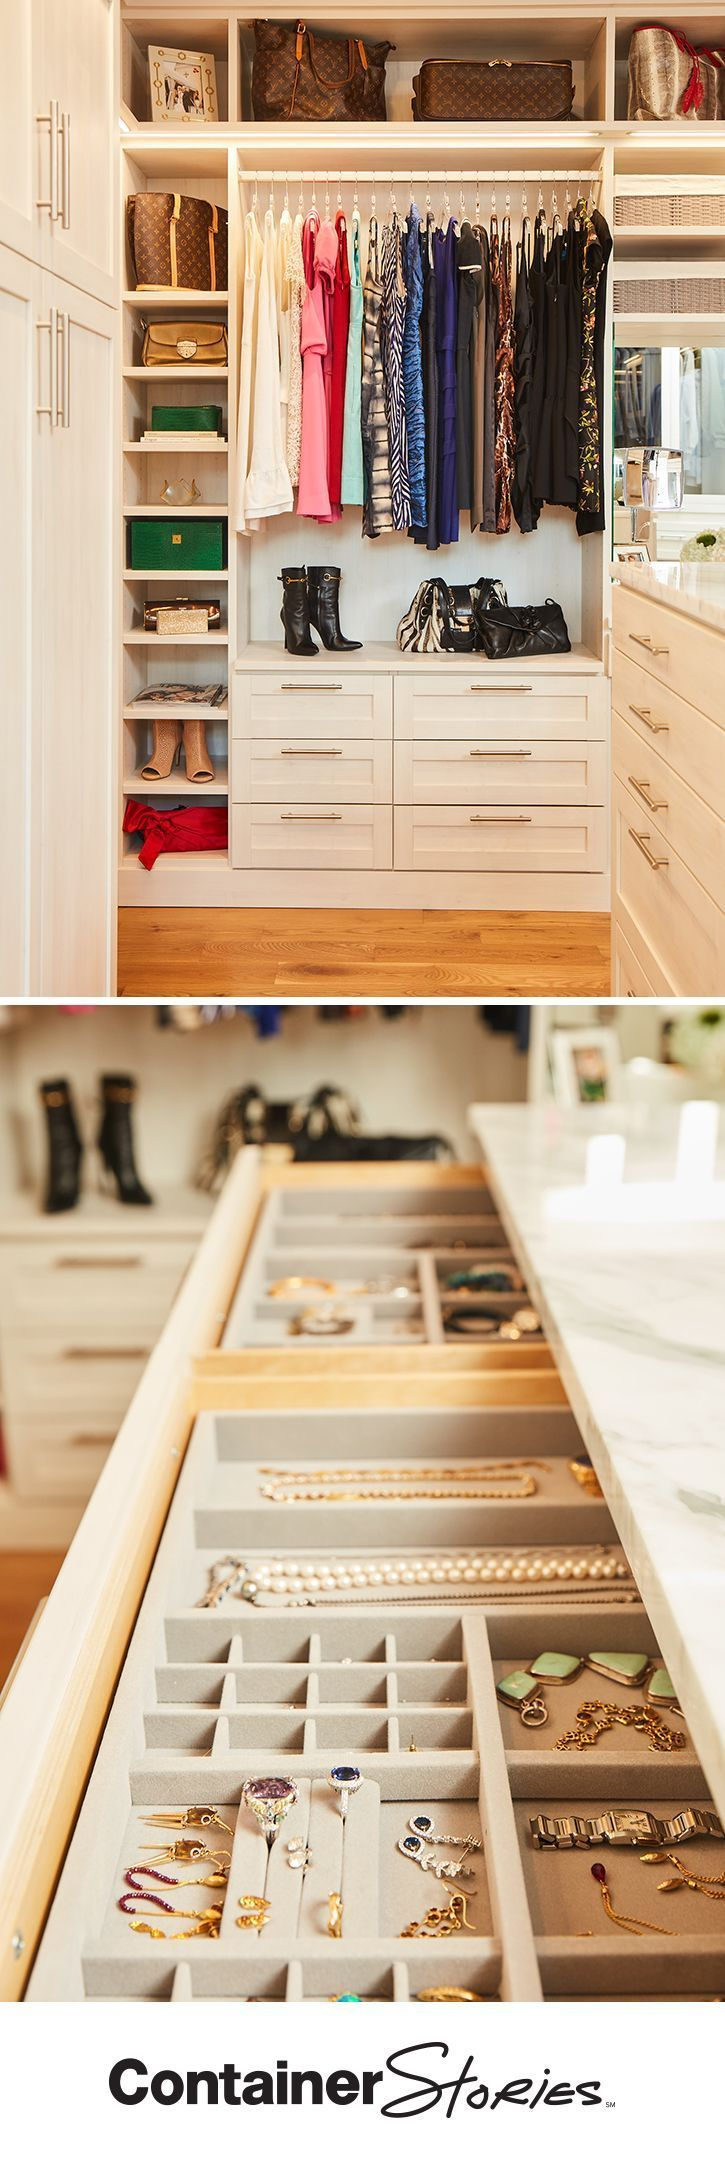 Locking Jewelry Drawers In The Center Island Organize Brooke S Favorite Pieces She Loves That Her Diy Master Closet Closet Designs Bedroom Organization Closet